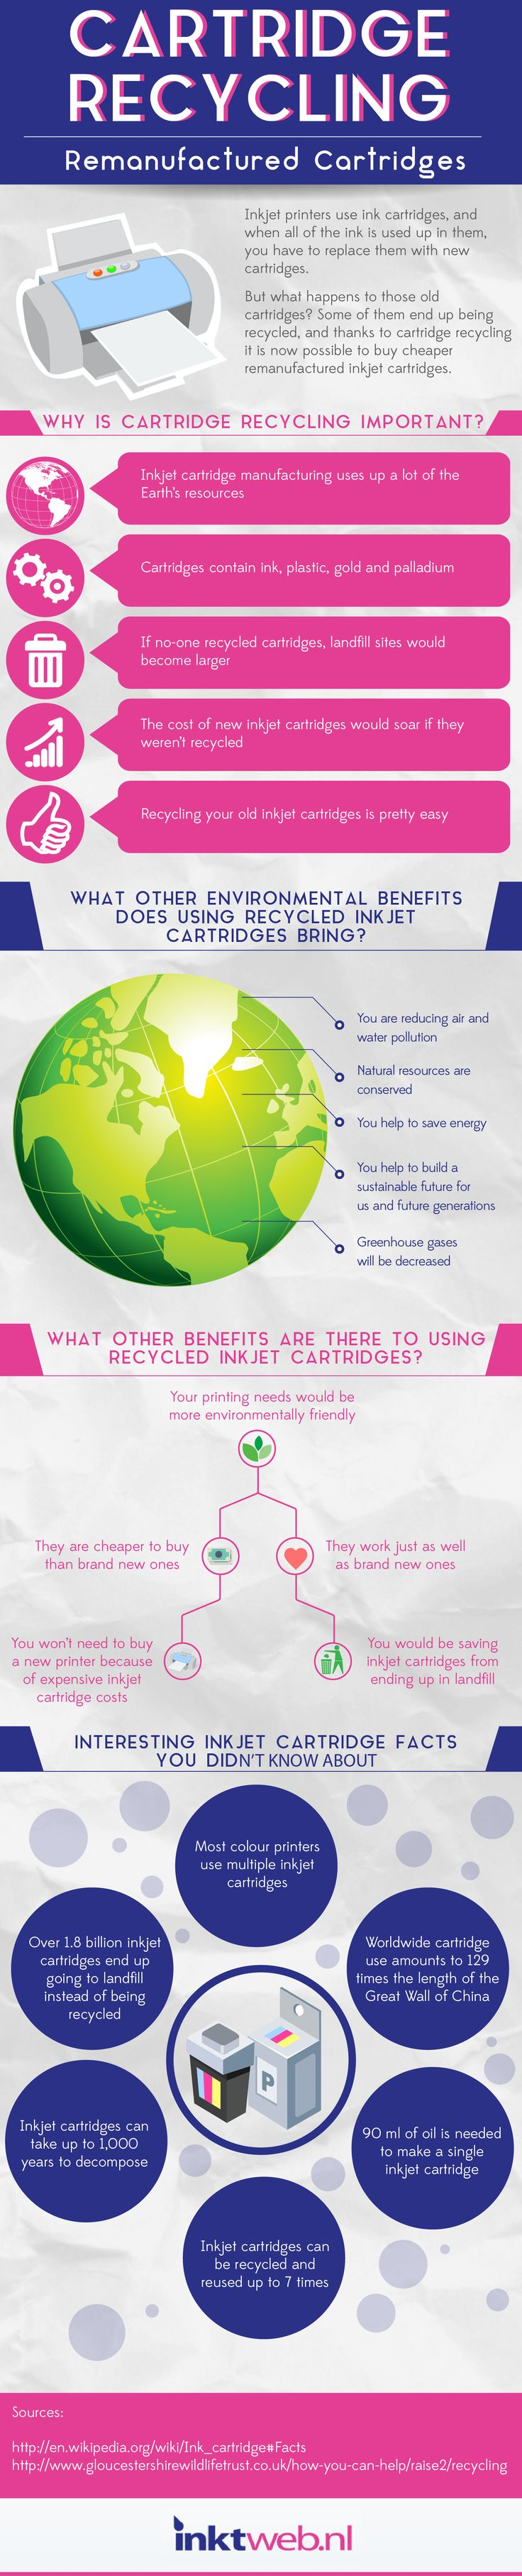 Environmental Benefits of Recycling Printer Cartridges Infographic